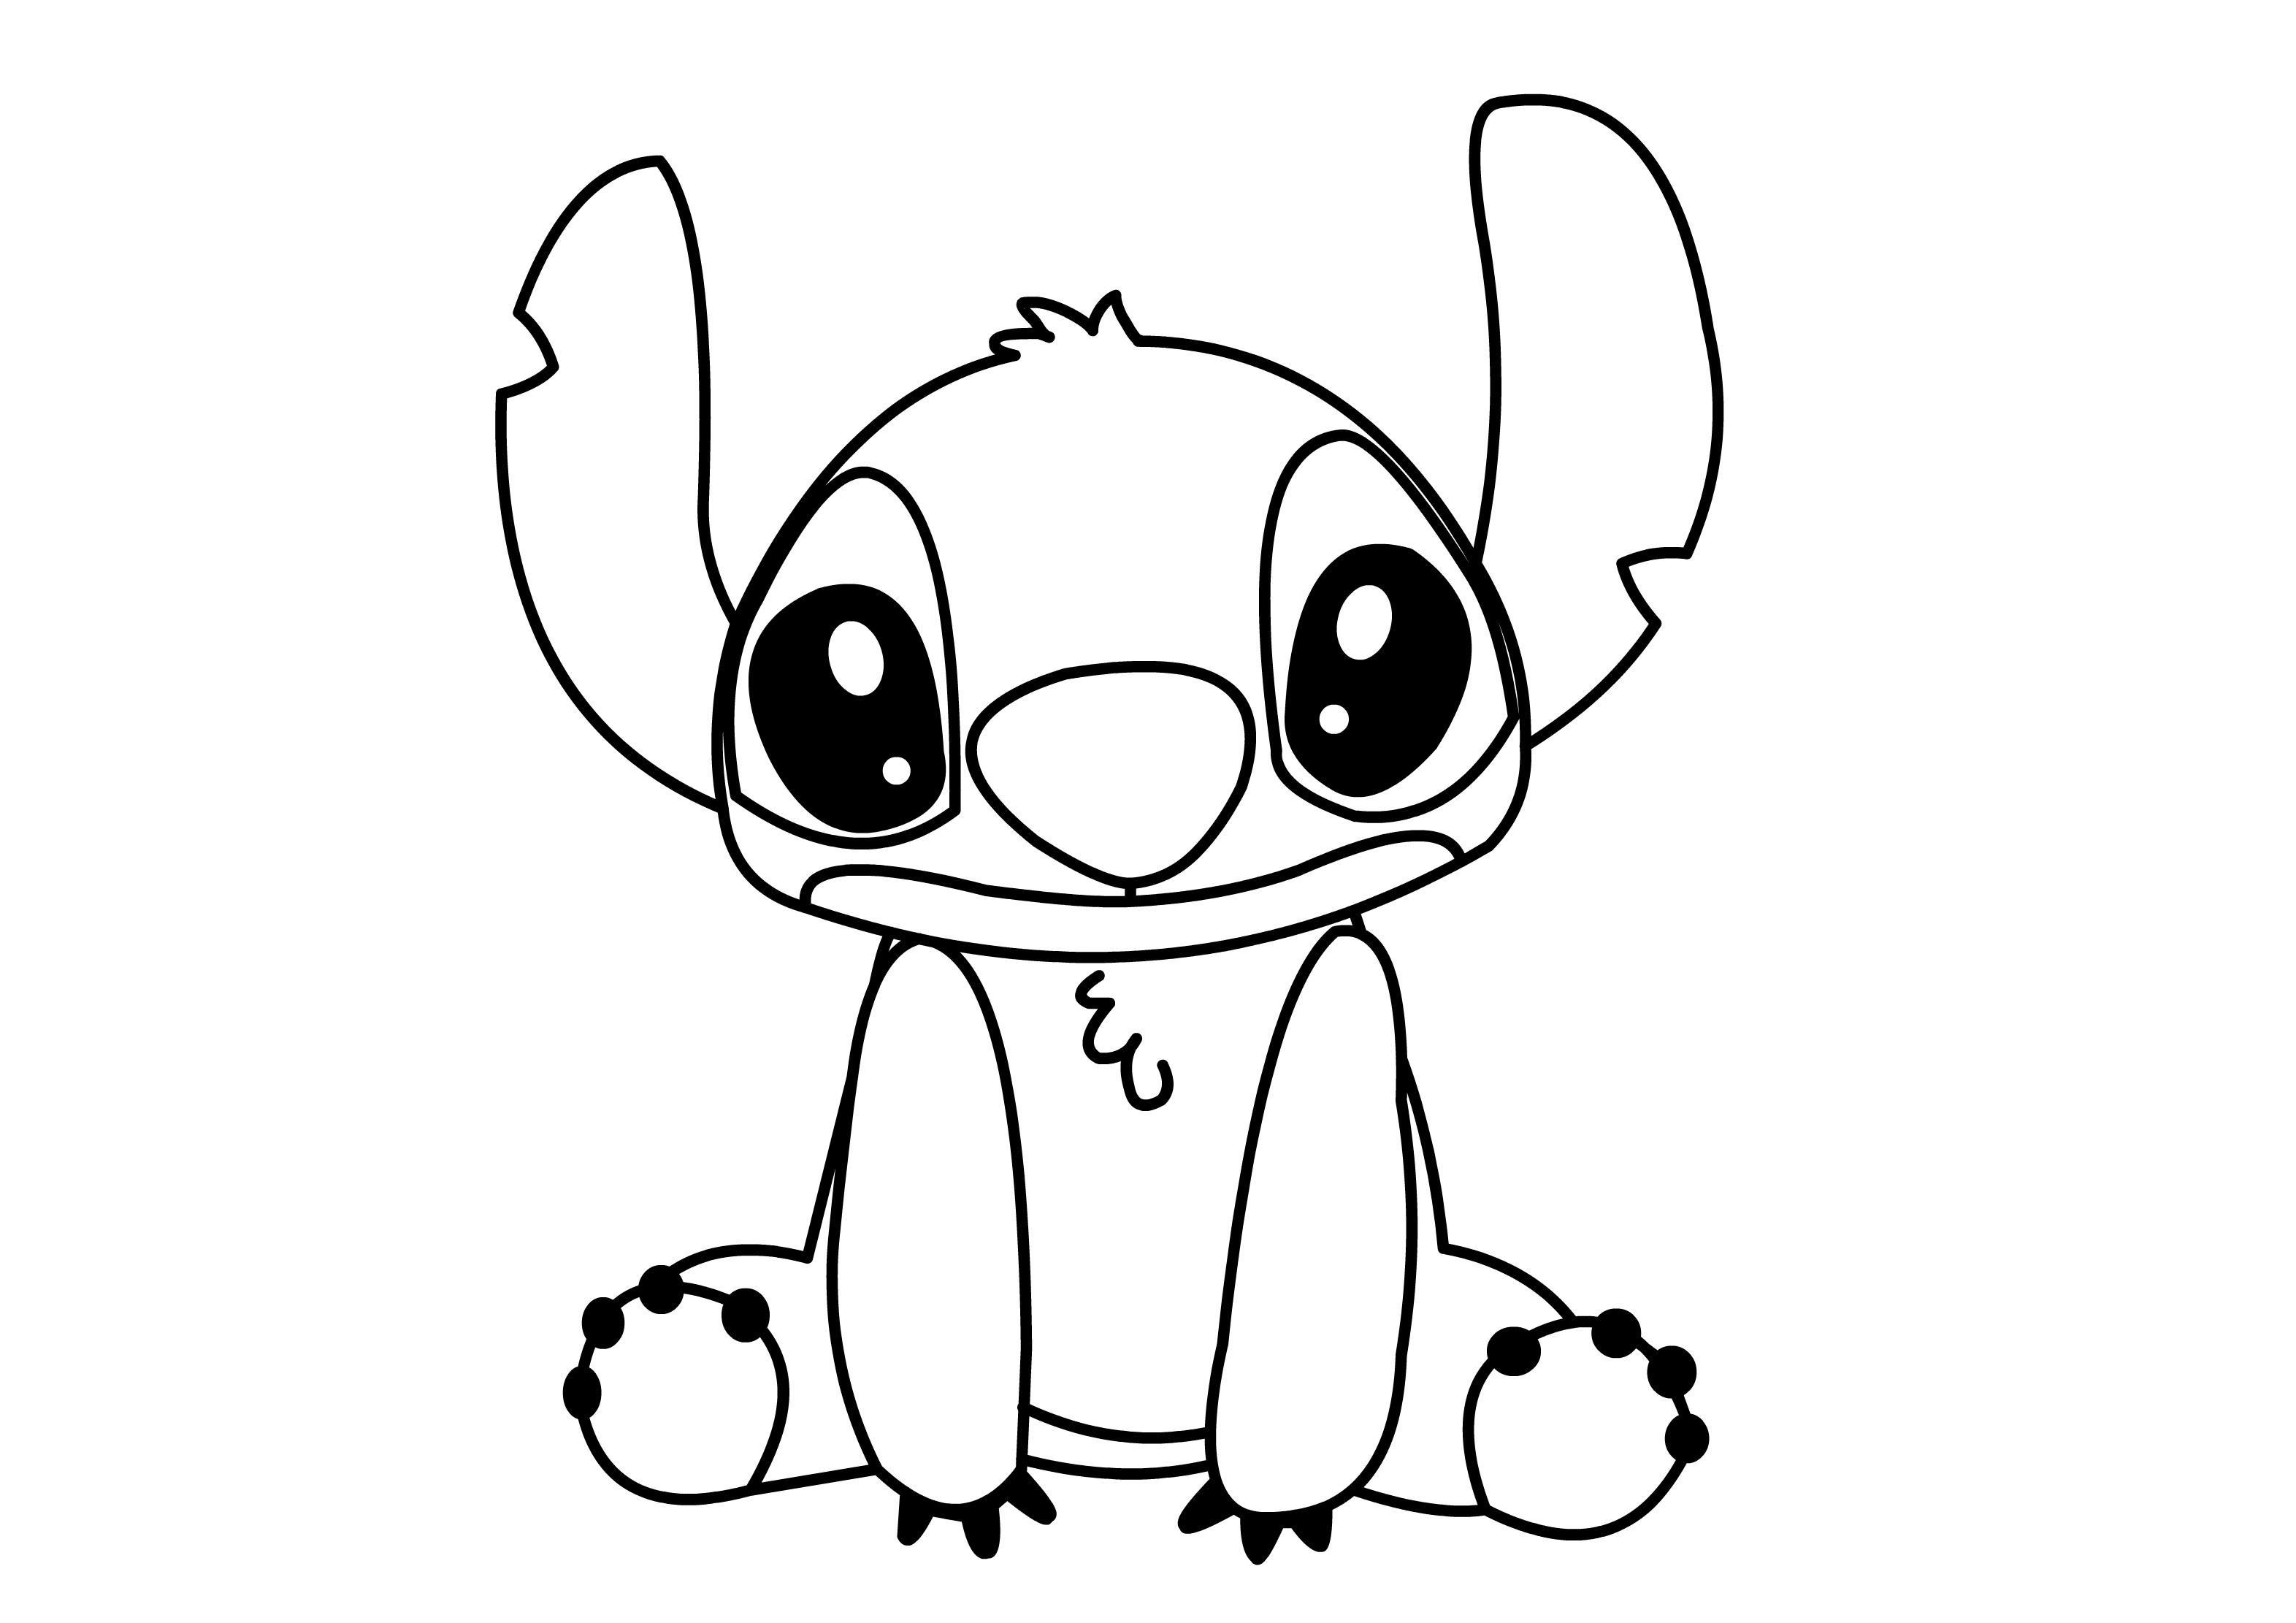 stitch coloring sheet stitch coloring pages coloring pages for kids stitch coloring sheet